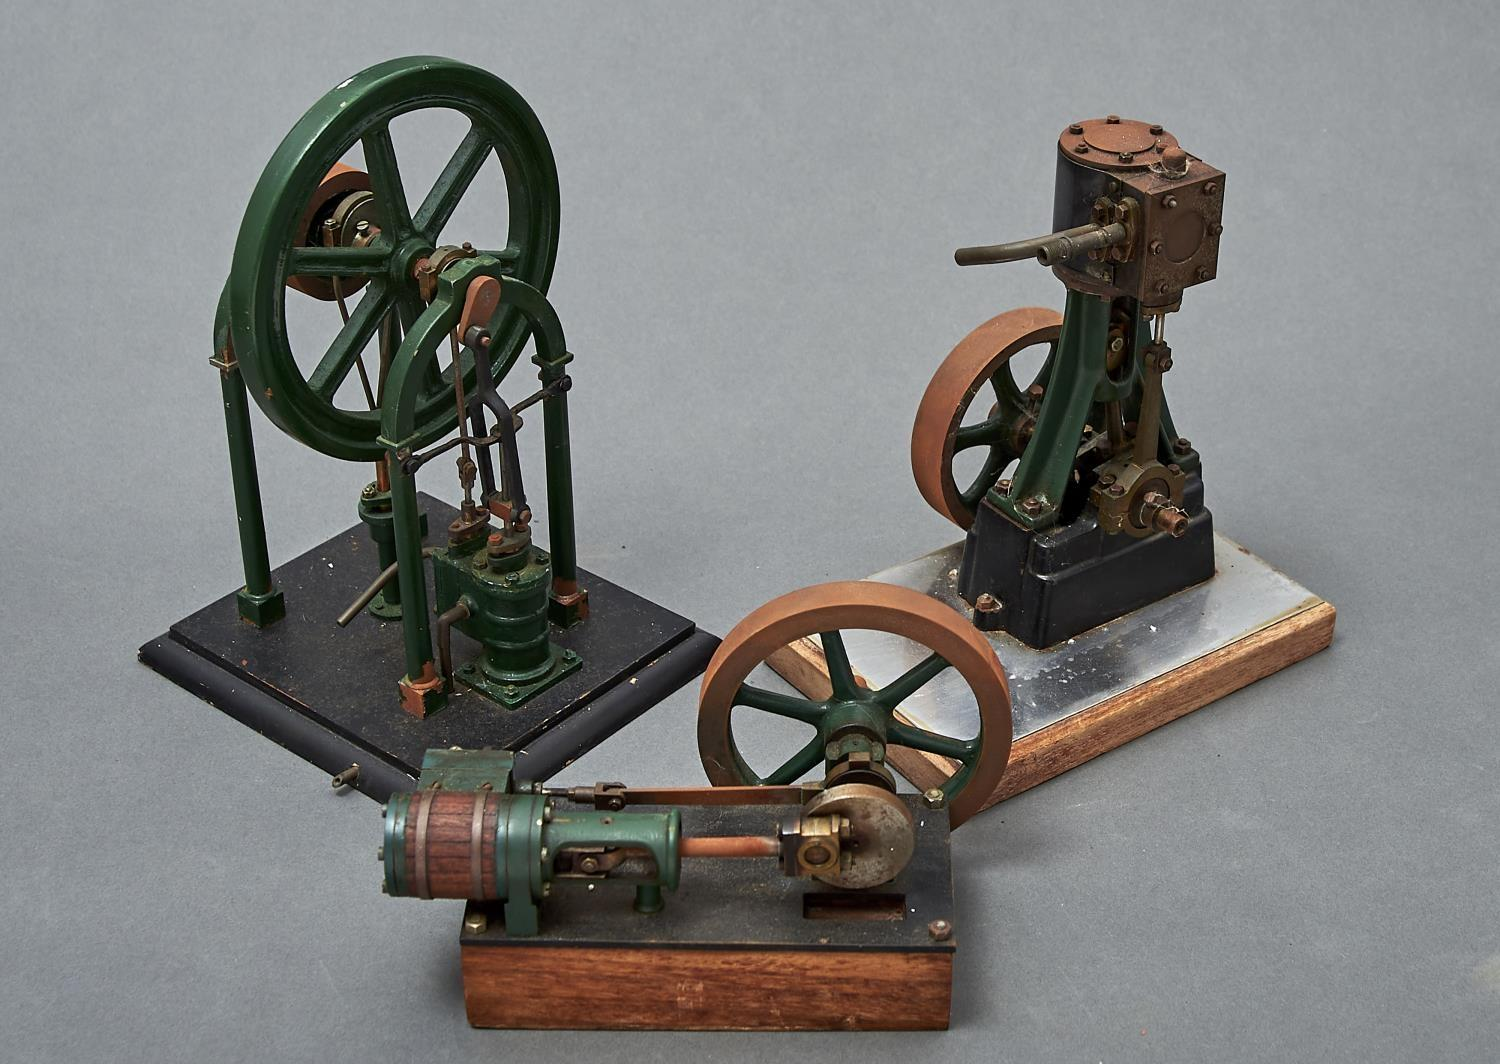 A MODEL STATIONARY STEAM ENGINE, FIRST HALF 20TH C, OF BRASS, COPPER AND GREEN PAINTED FERROUS METAL